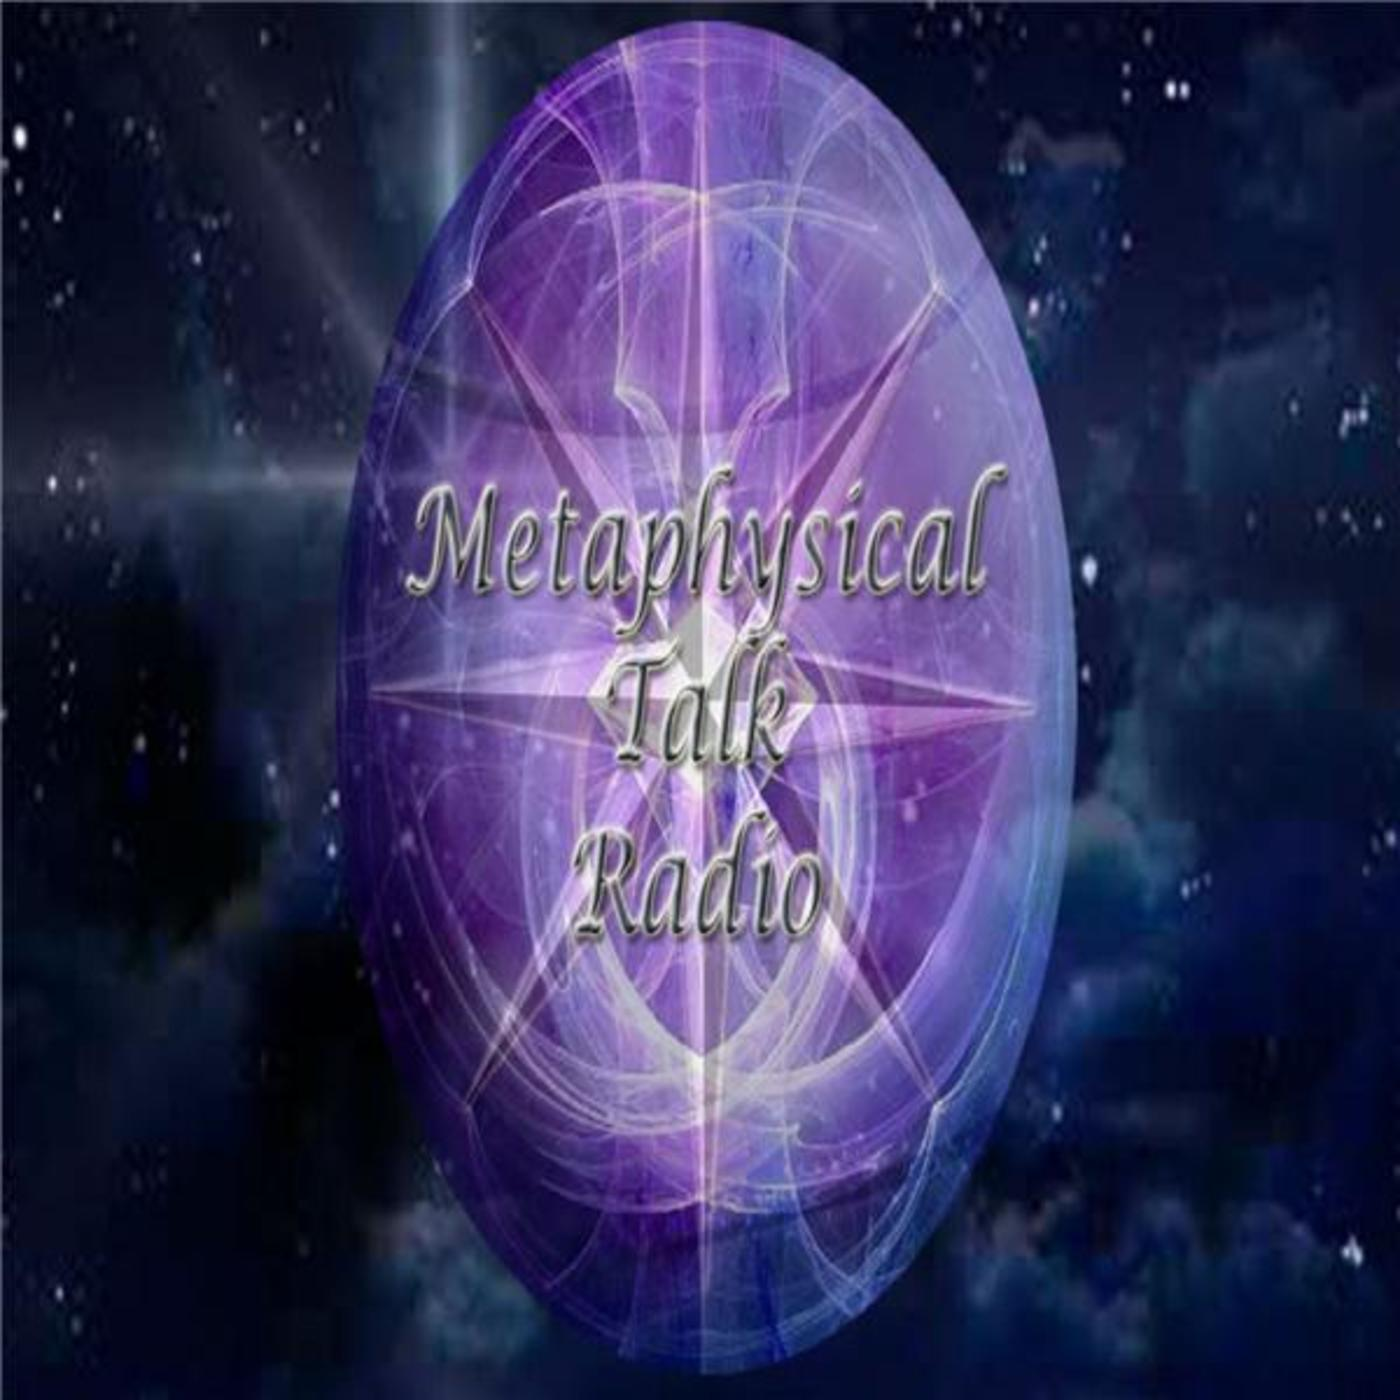 Metaphysical Talk Radio